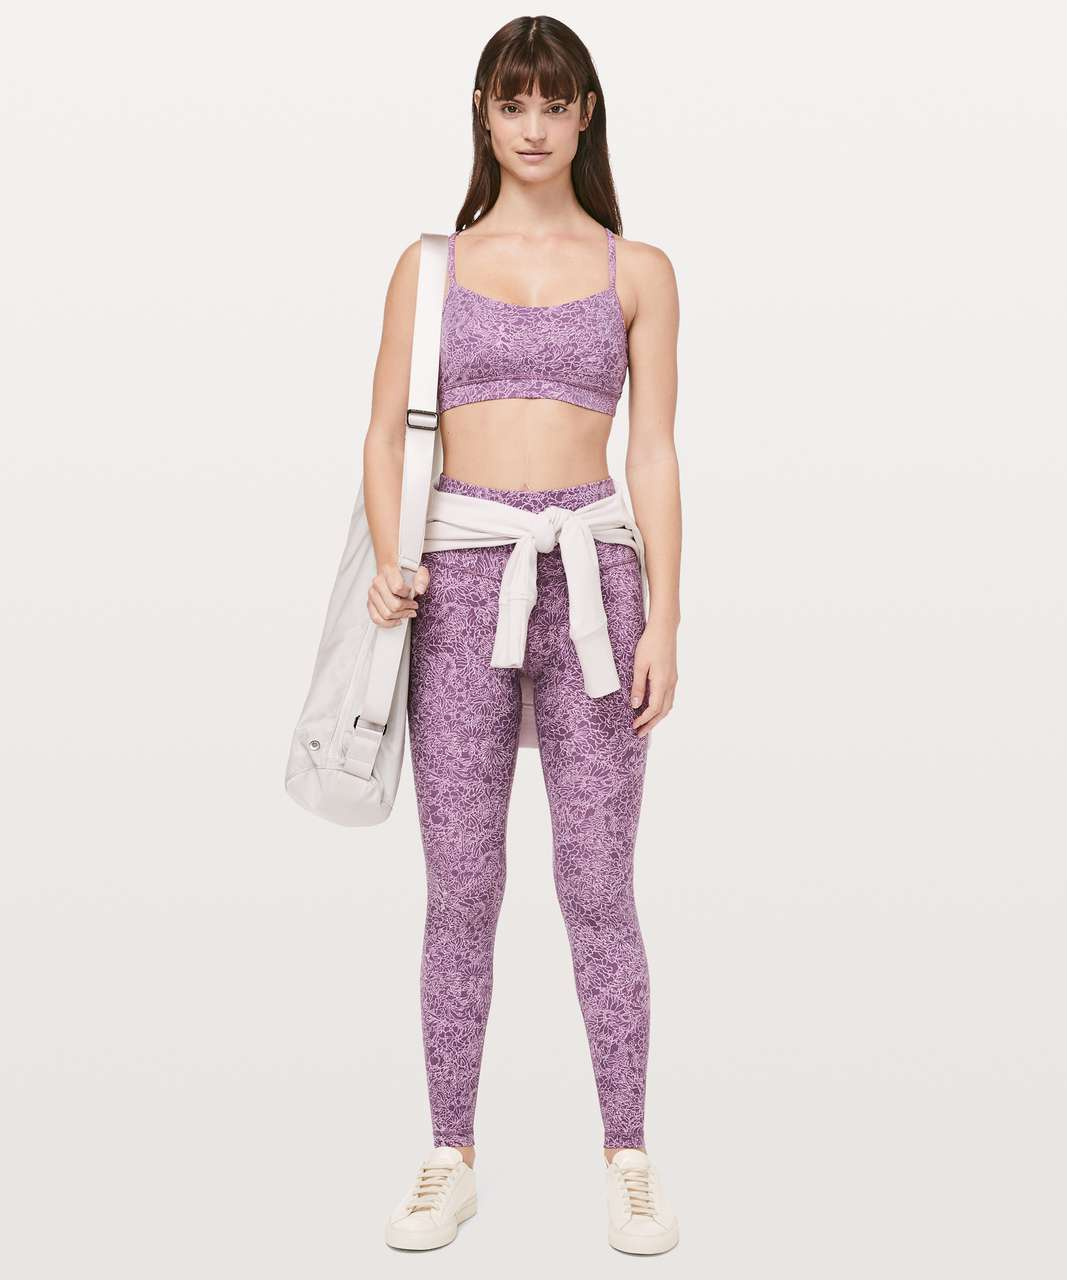 "Lululemon Align Pant *Full Length 28"" - Arabesque Antoinette Smoky Quartz"